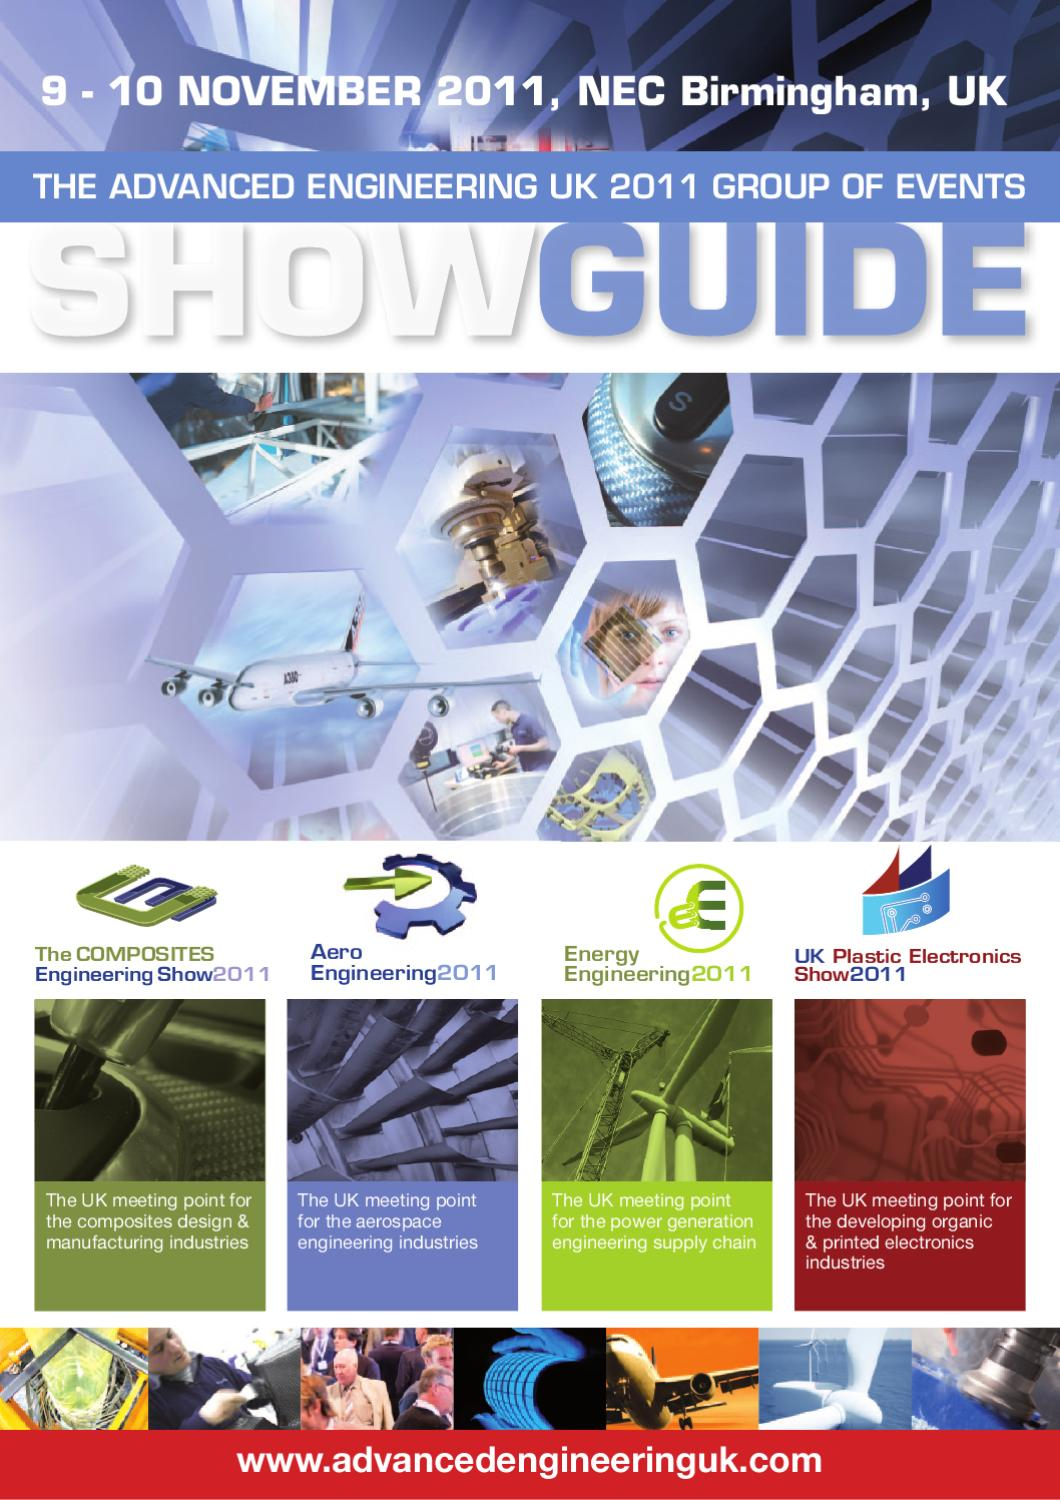 The Advanced Engineering UK 2011 Group of Events by The